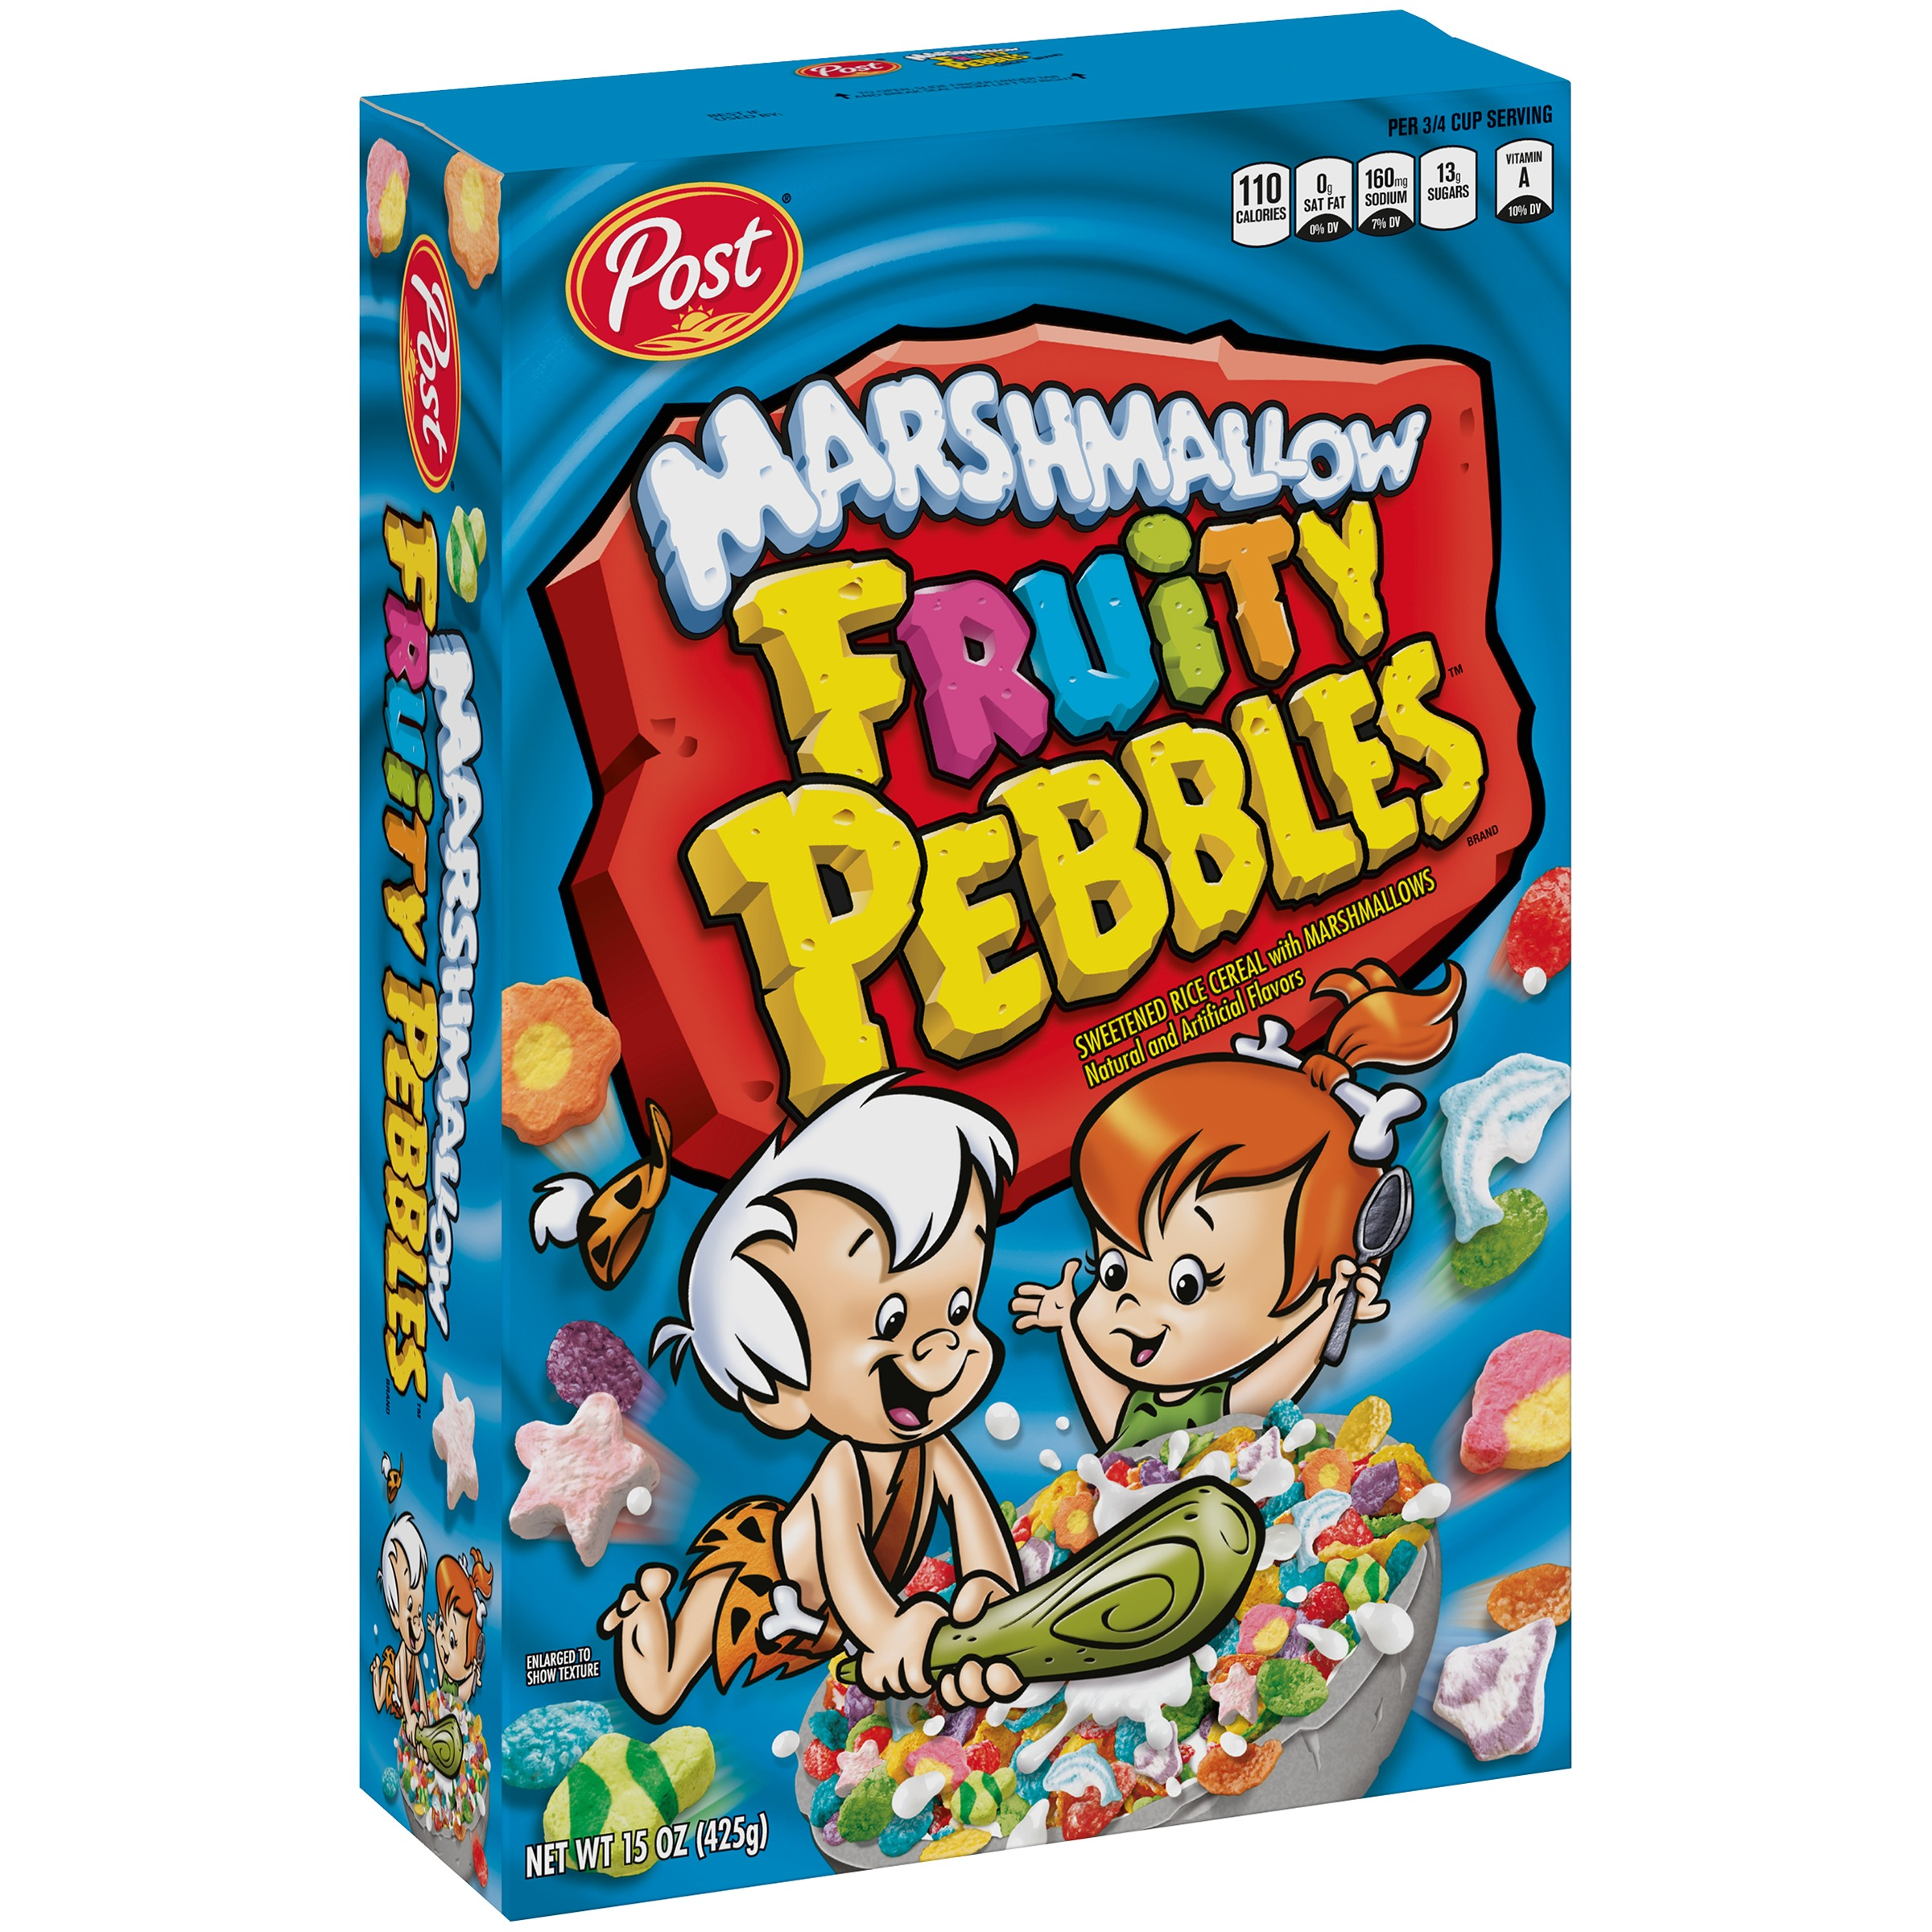 Post Fruity Pebbles Gluten Free Breakfast Cereal, Marshmallows, 15 Oz